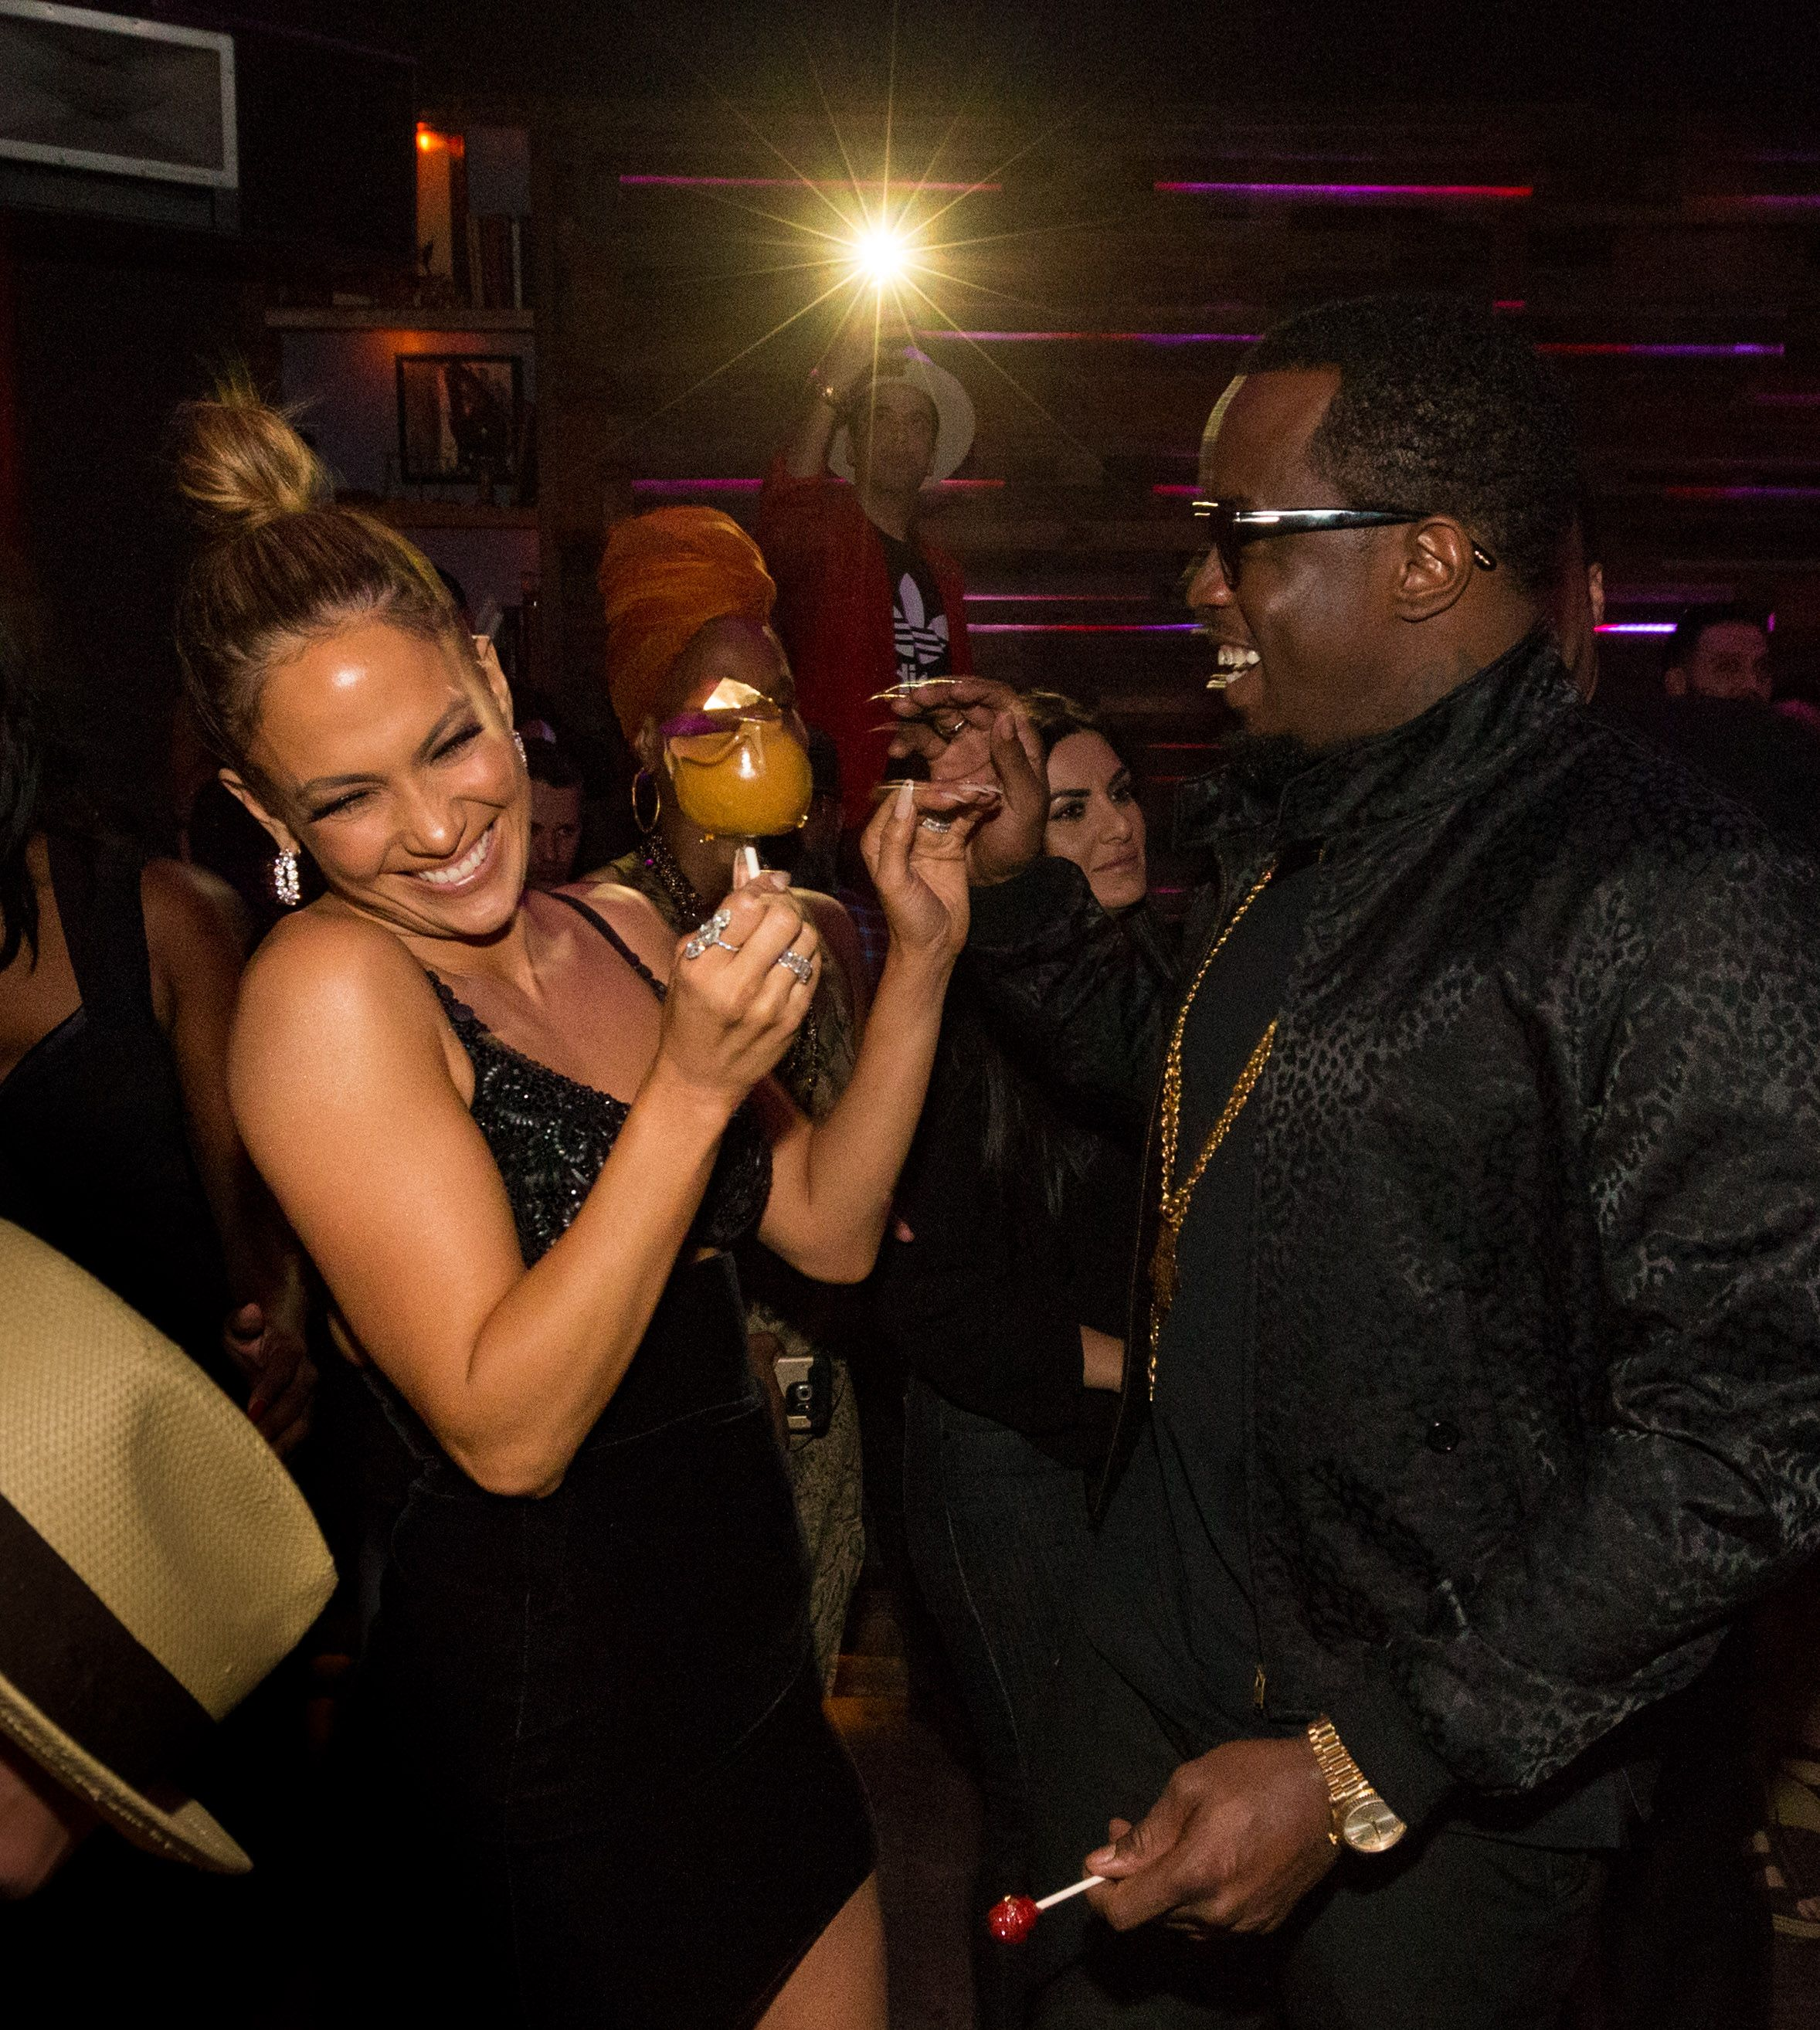 Jennifer Lopez's Ex Diddy Posts Thirsty Comment on Her Instagram - J.Lo and Diddy's Relationship After Dating